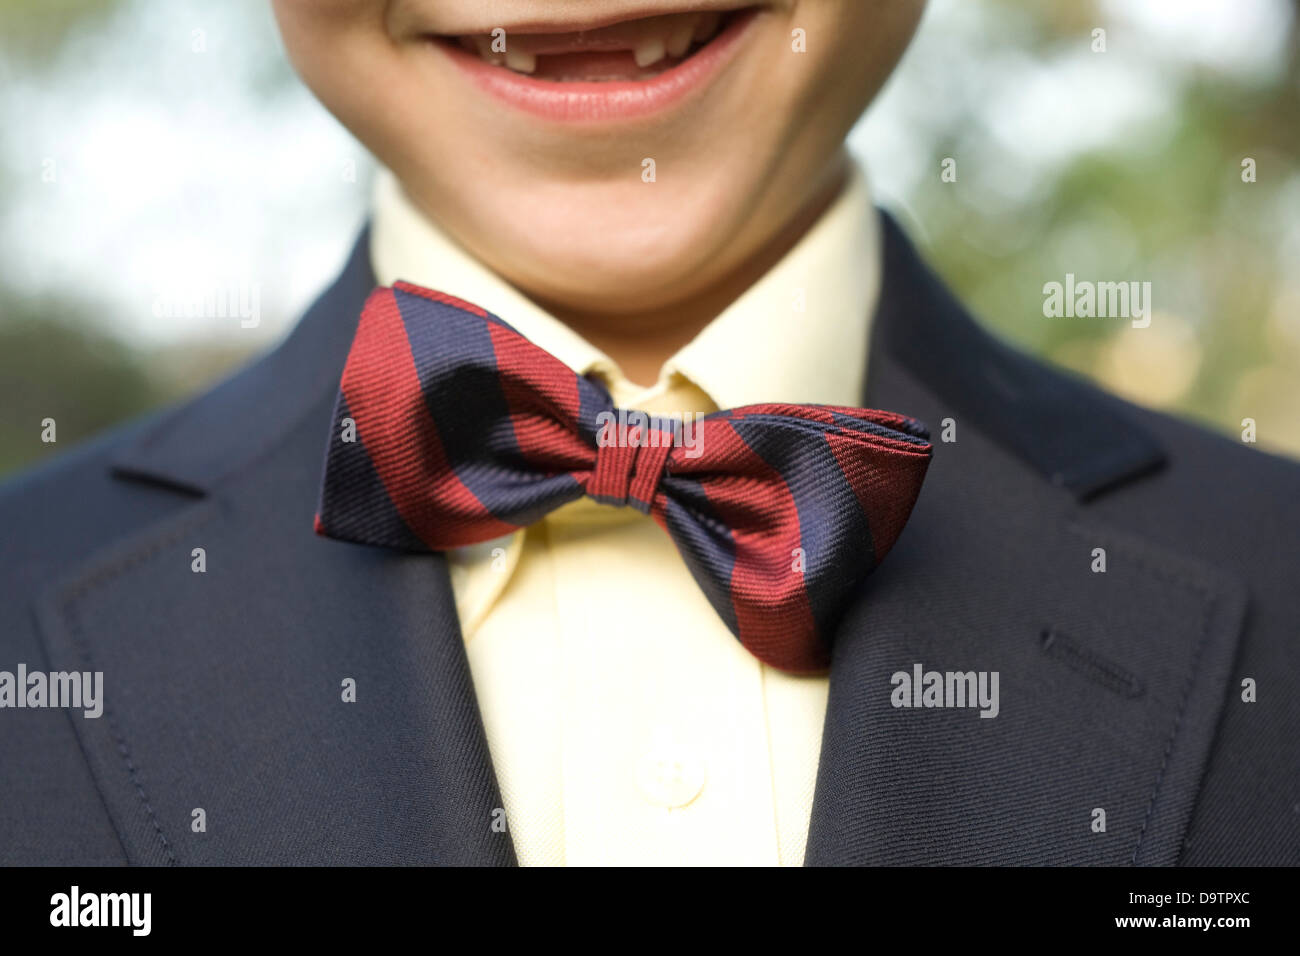 LOS ANGELES, CA – NOVEMBER 11: Boy with a bow tie in Los Angeles, California on November 11, 2007. - Stock Image